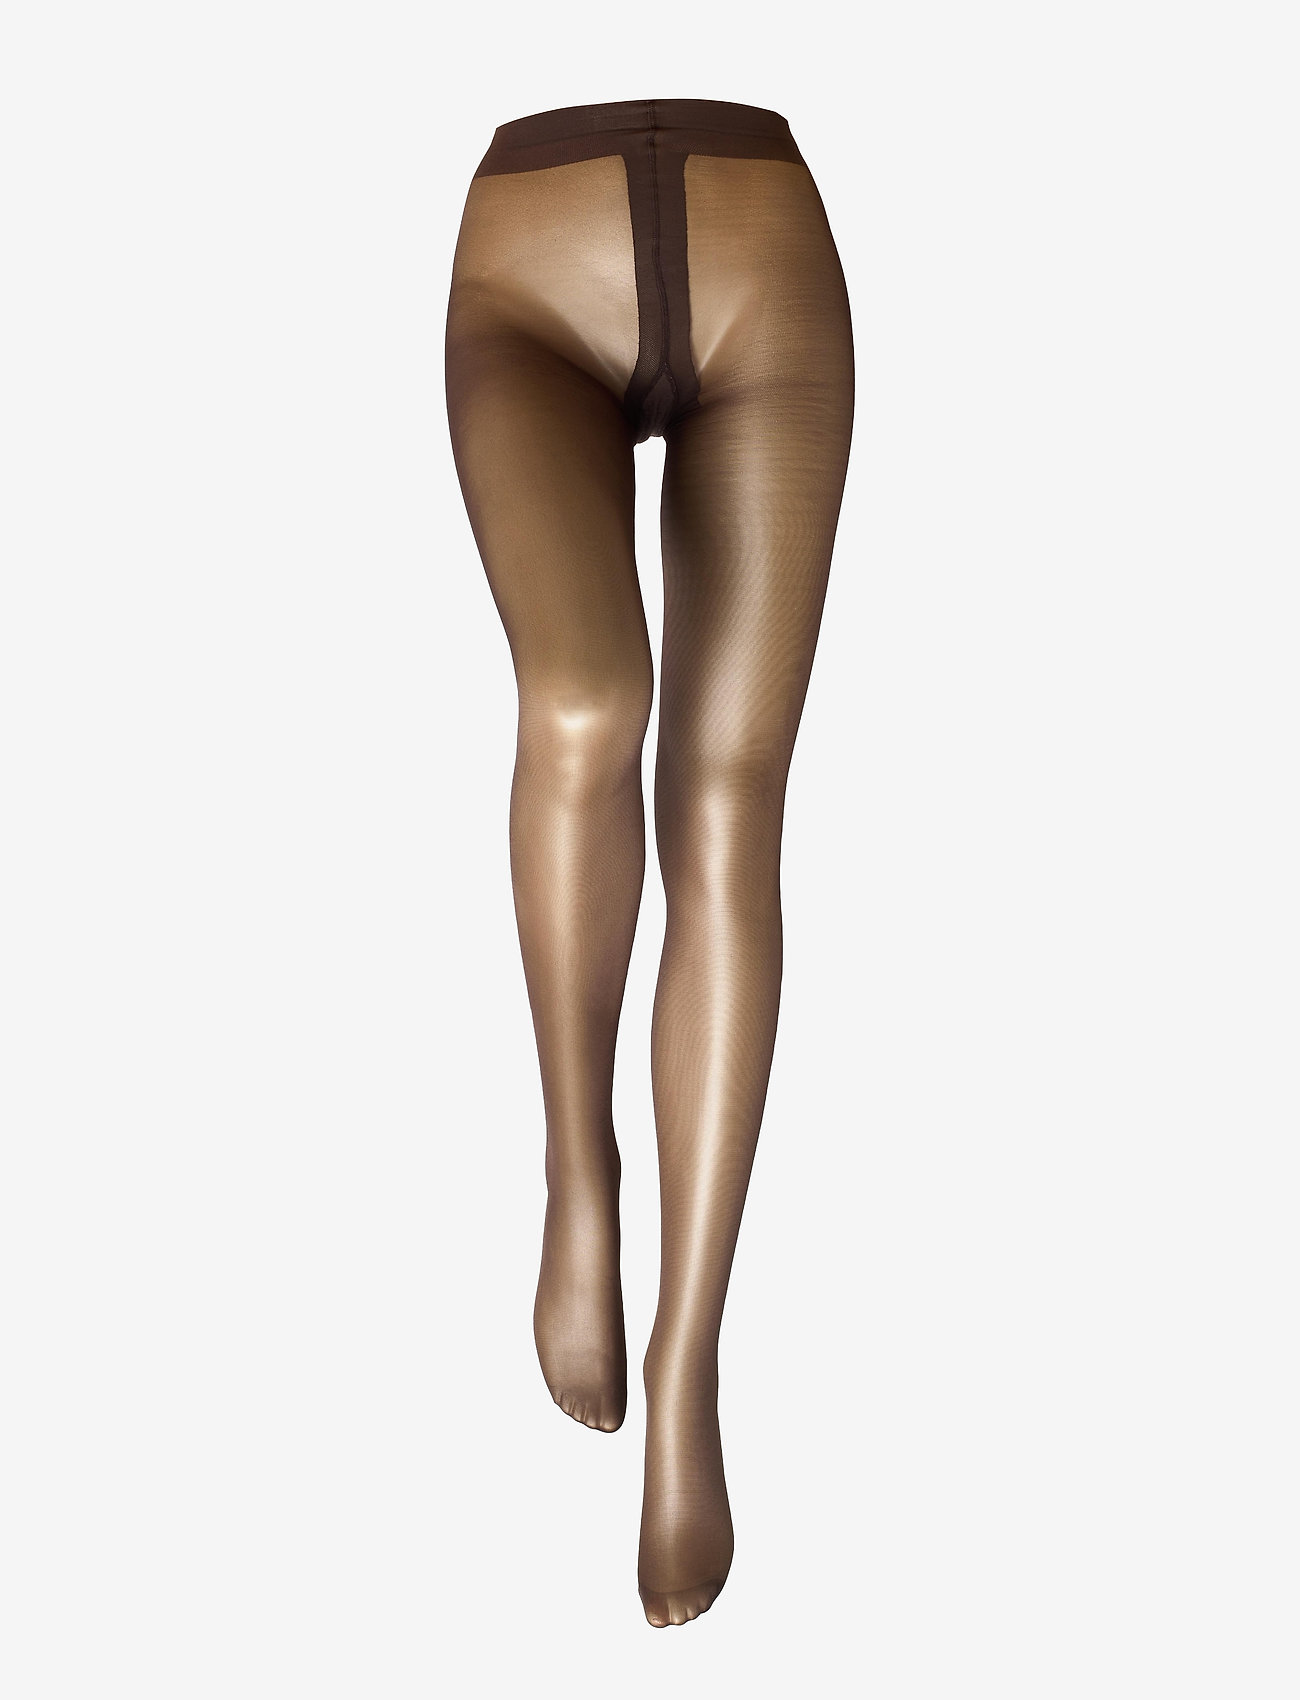 Vogue - Ladies den pantyhose, Sensual Touch 20den - basic - truffle - 1